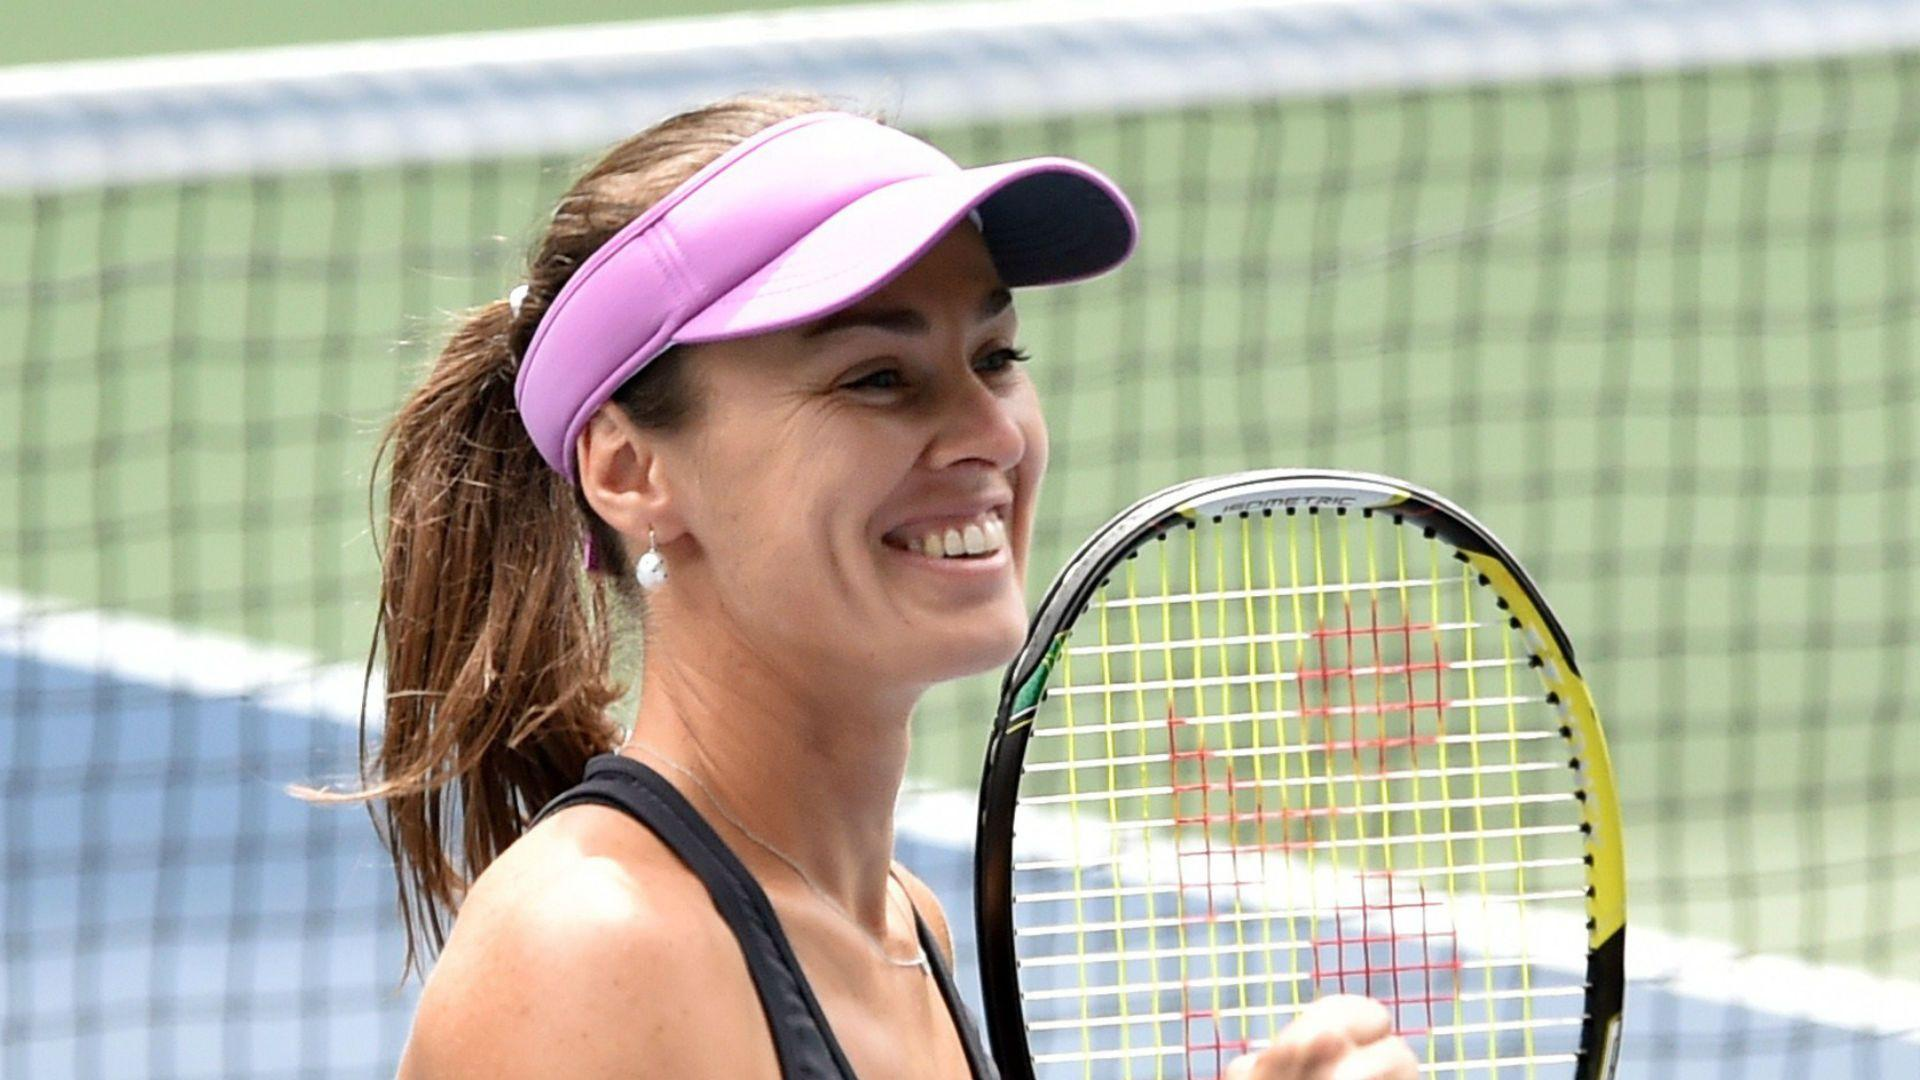 Martina Hingis named in Switzerland's Fed Cup team after 17 year